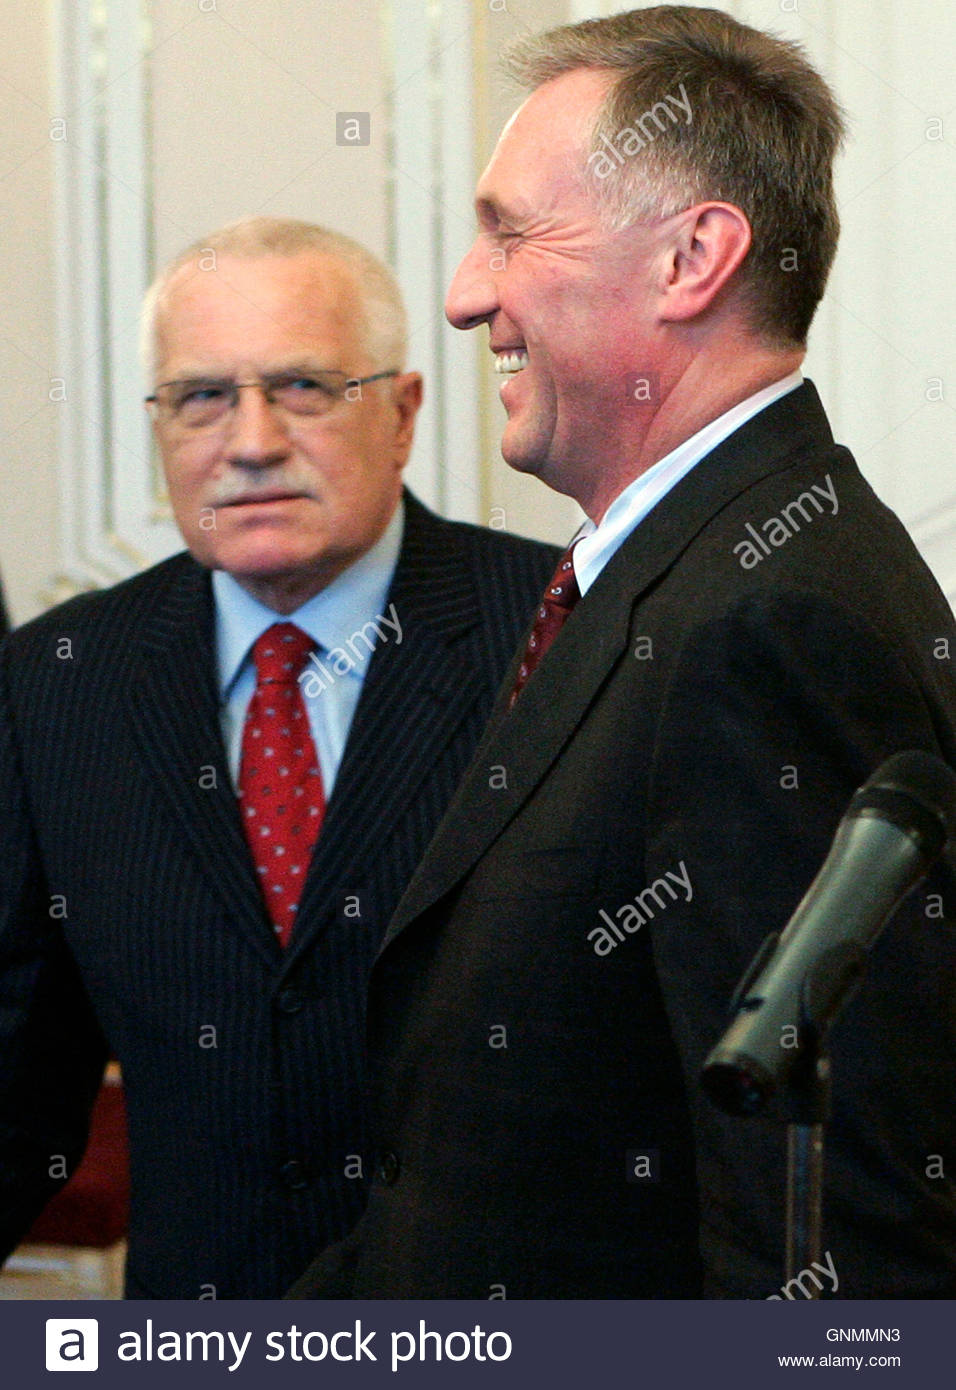 czech prime minister mirek topolanek r smiles after tendering czech prime minister mirek topolanek r smiles after tendering his resignation to czech president